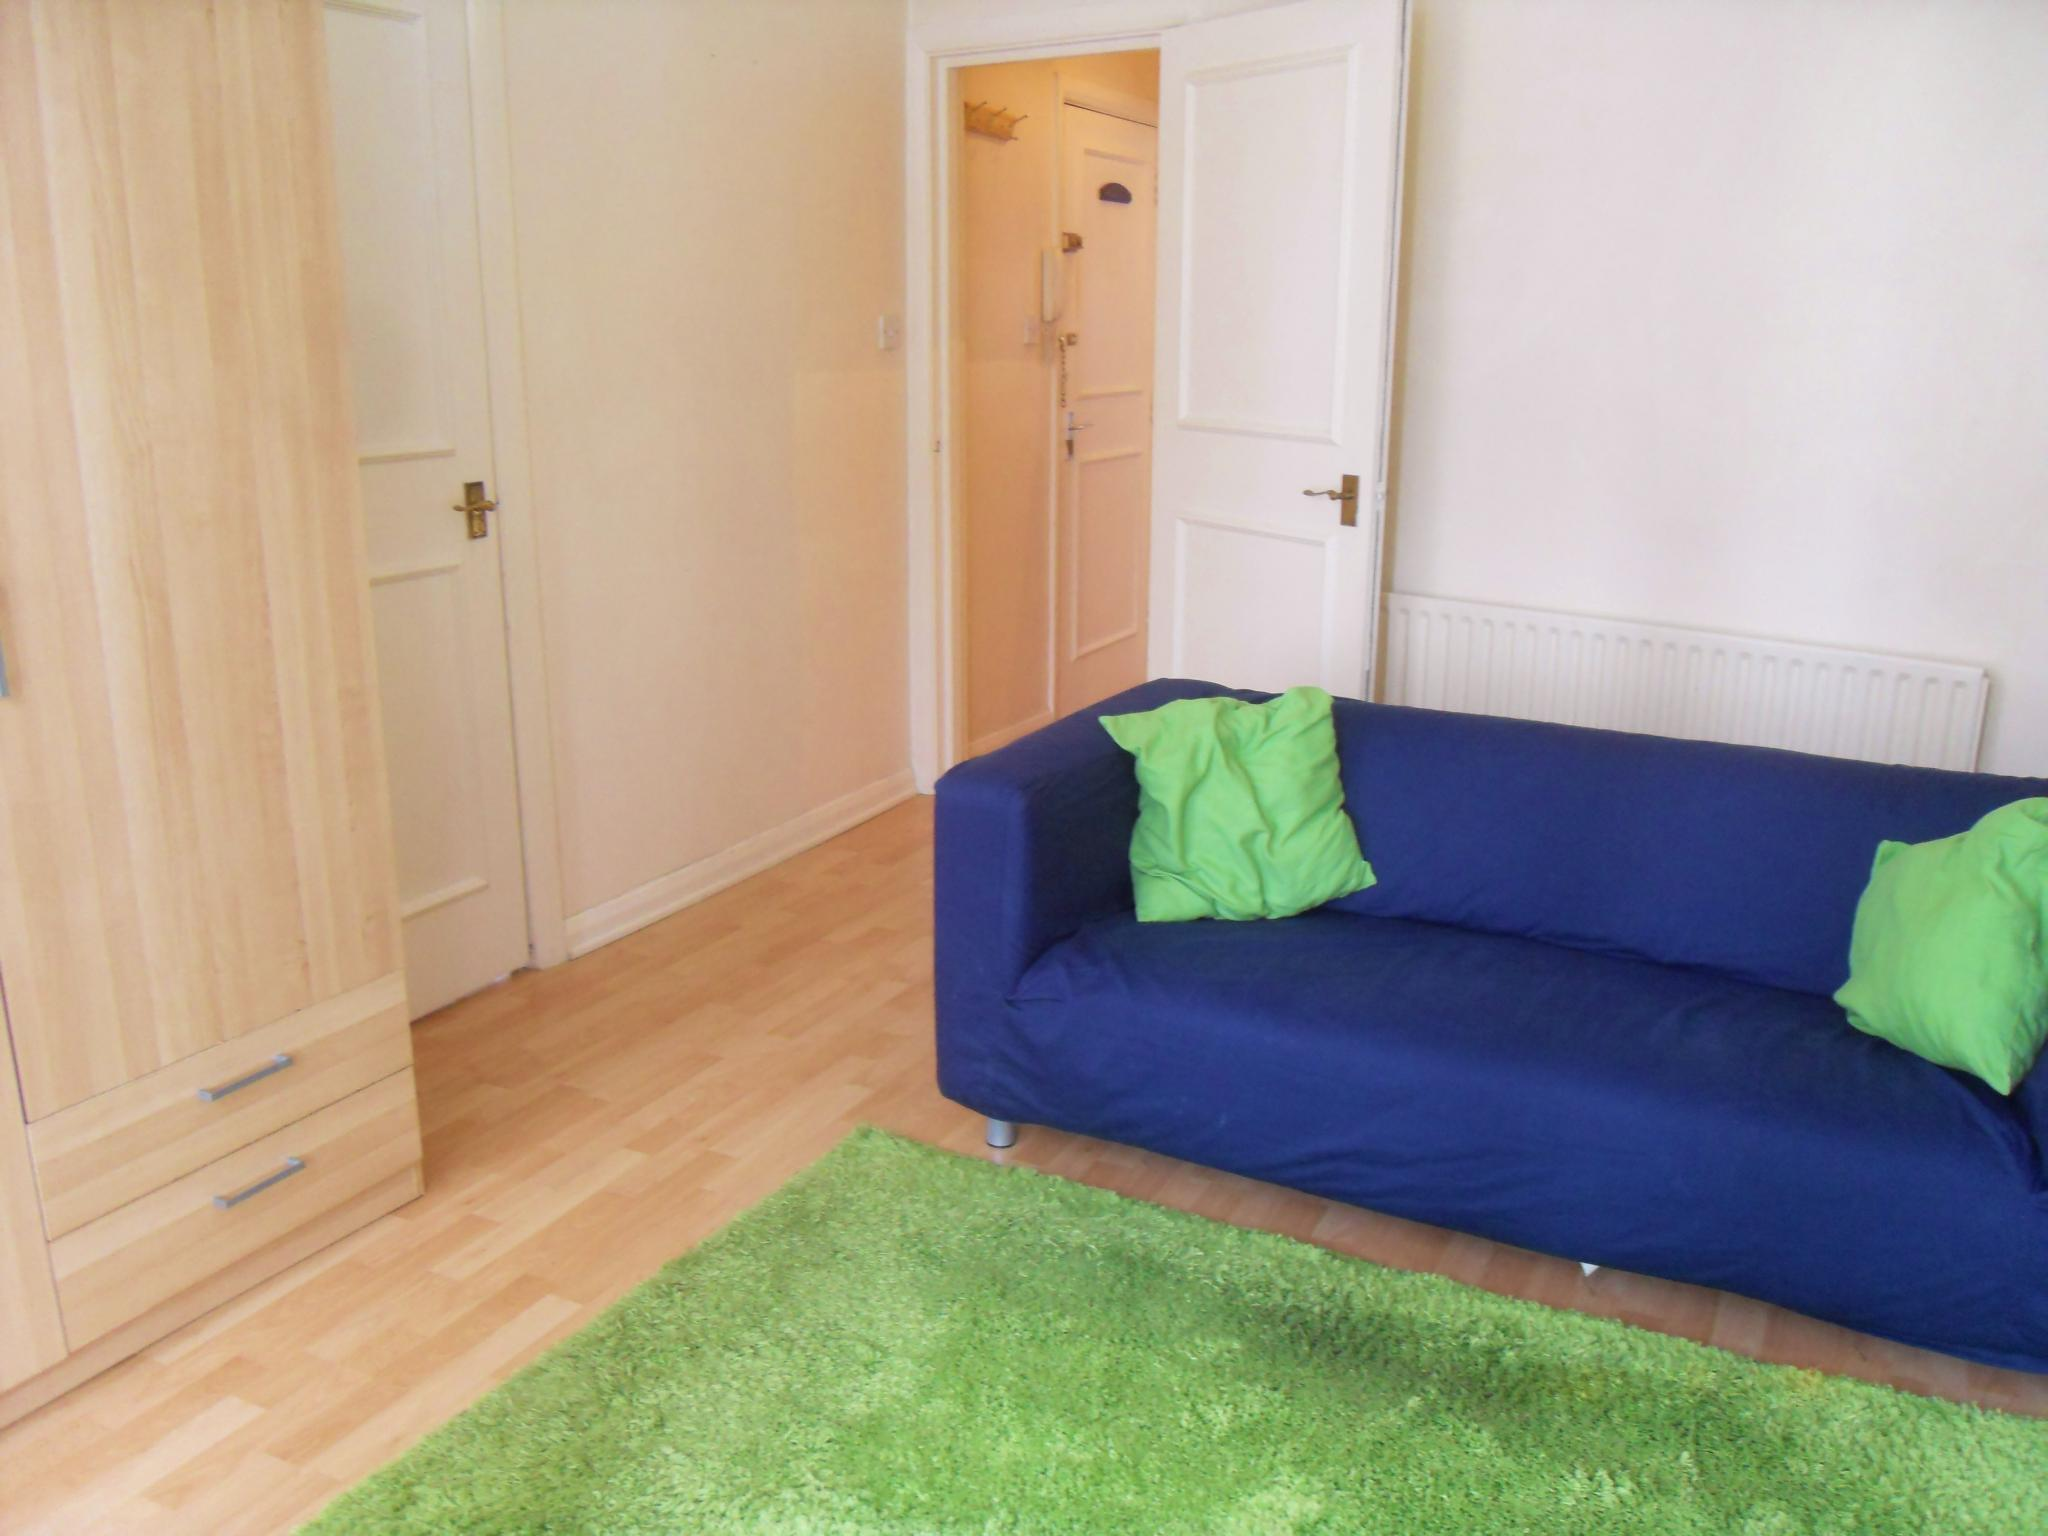 1 bedroom flat flat/apartment To Let in Brent - Laminate Flooring Throughout